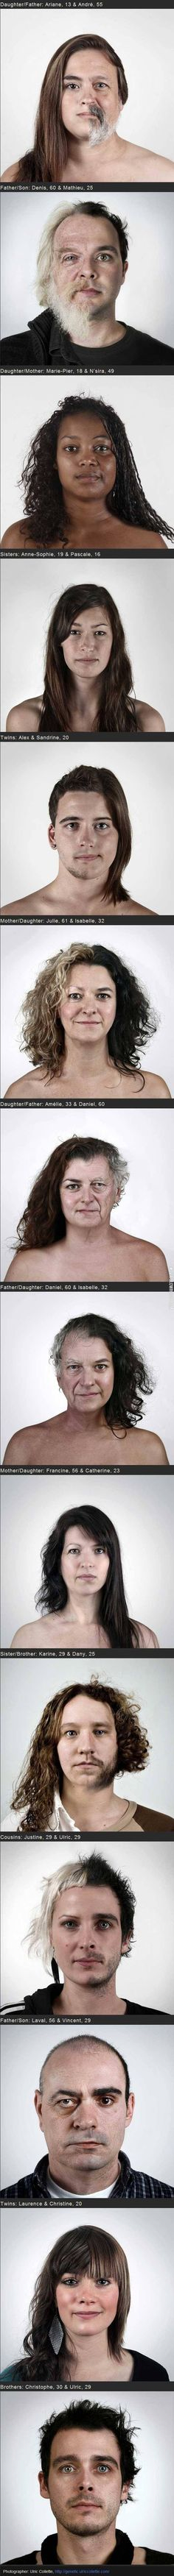 One big family – Photographic research on genetic similarities between family members by Ulric Collette. http://genetic.ulriccollette.com/